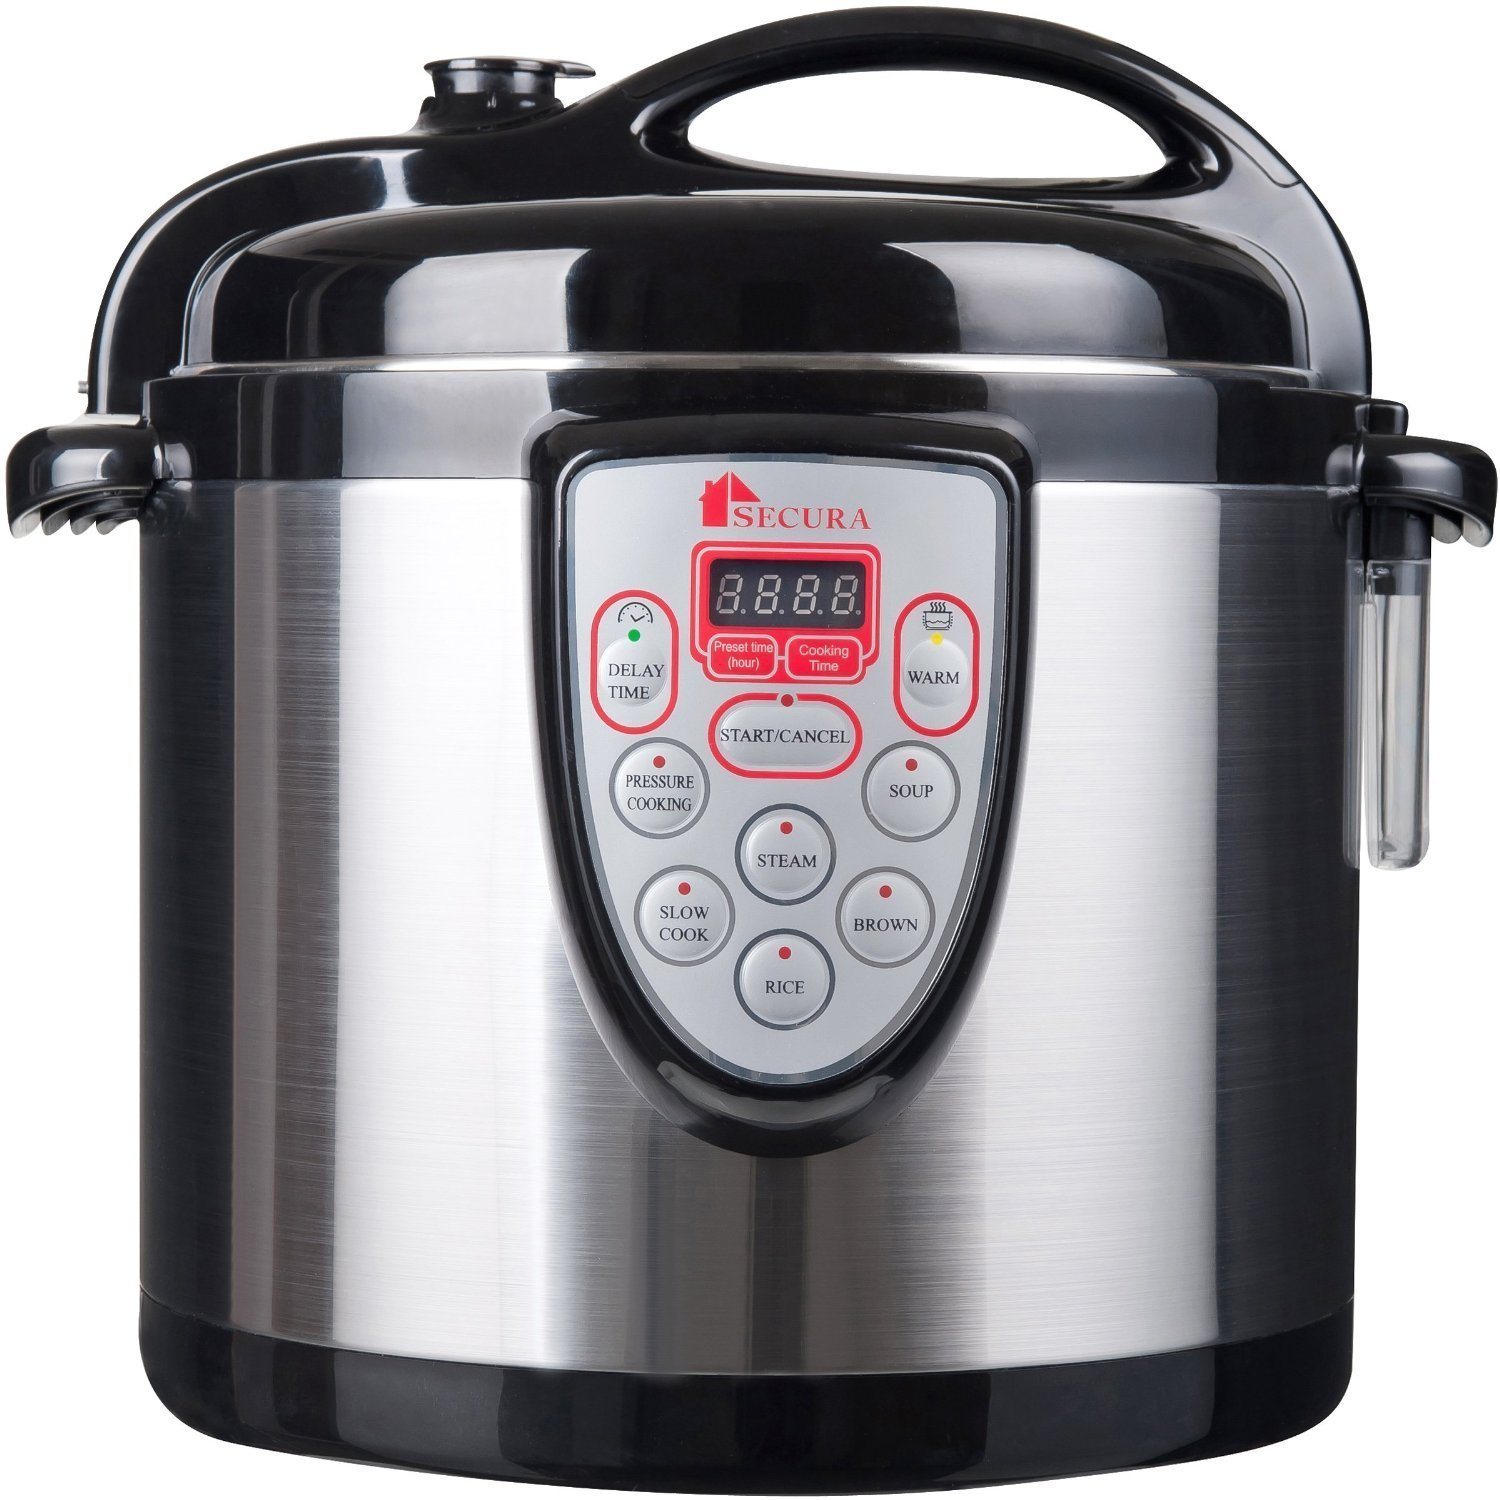 Fagor duo 8 quart pressure cooker -  Secura 6 In 1 Electric Pressure Cooker Fagor Duo Stainless Steel